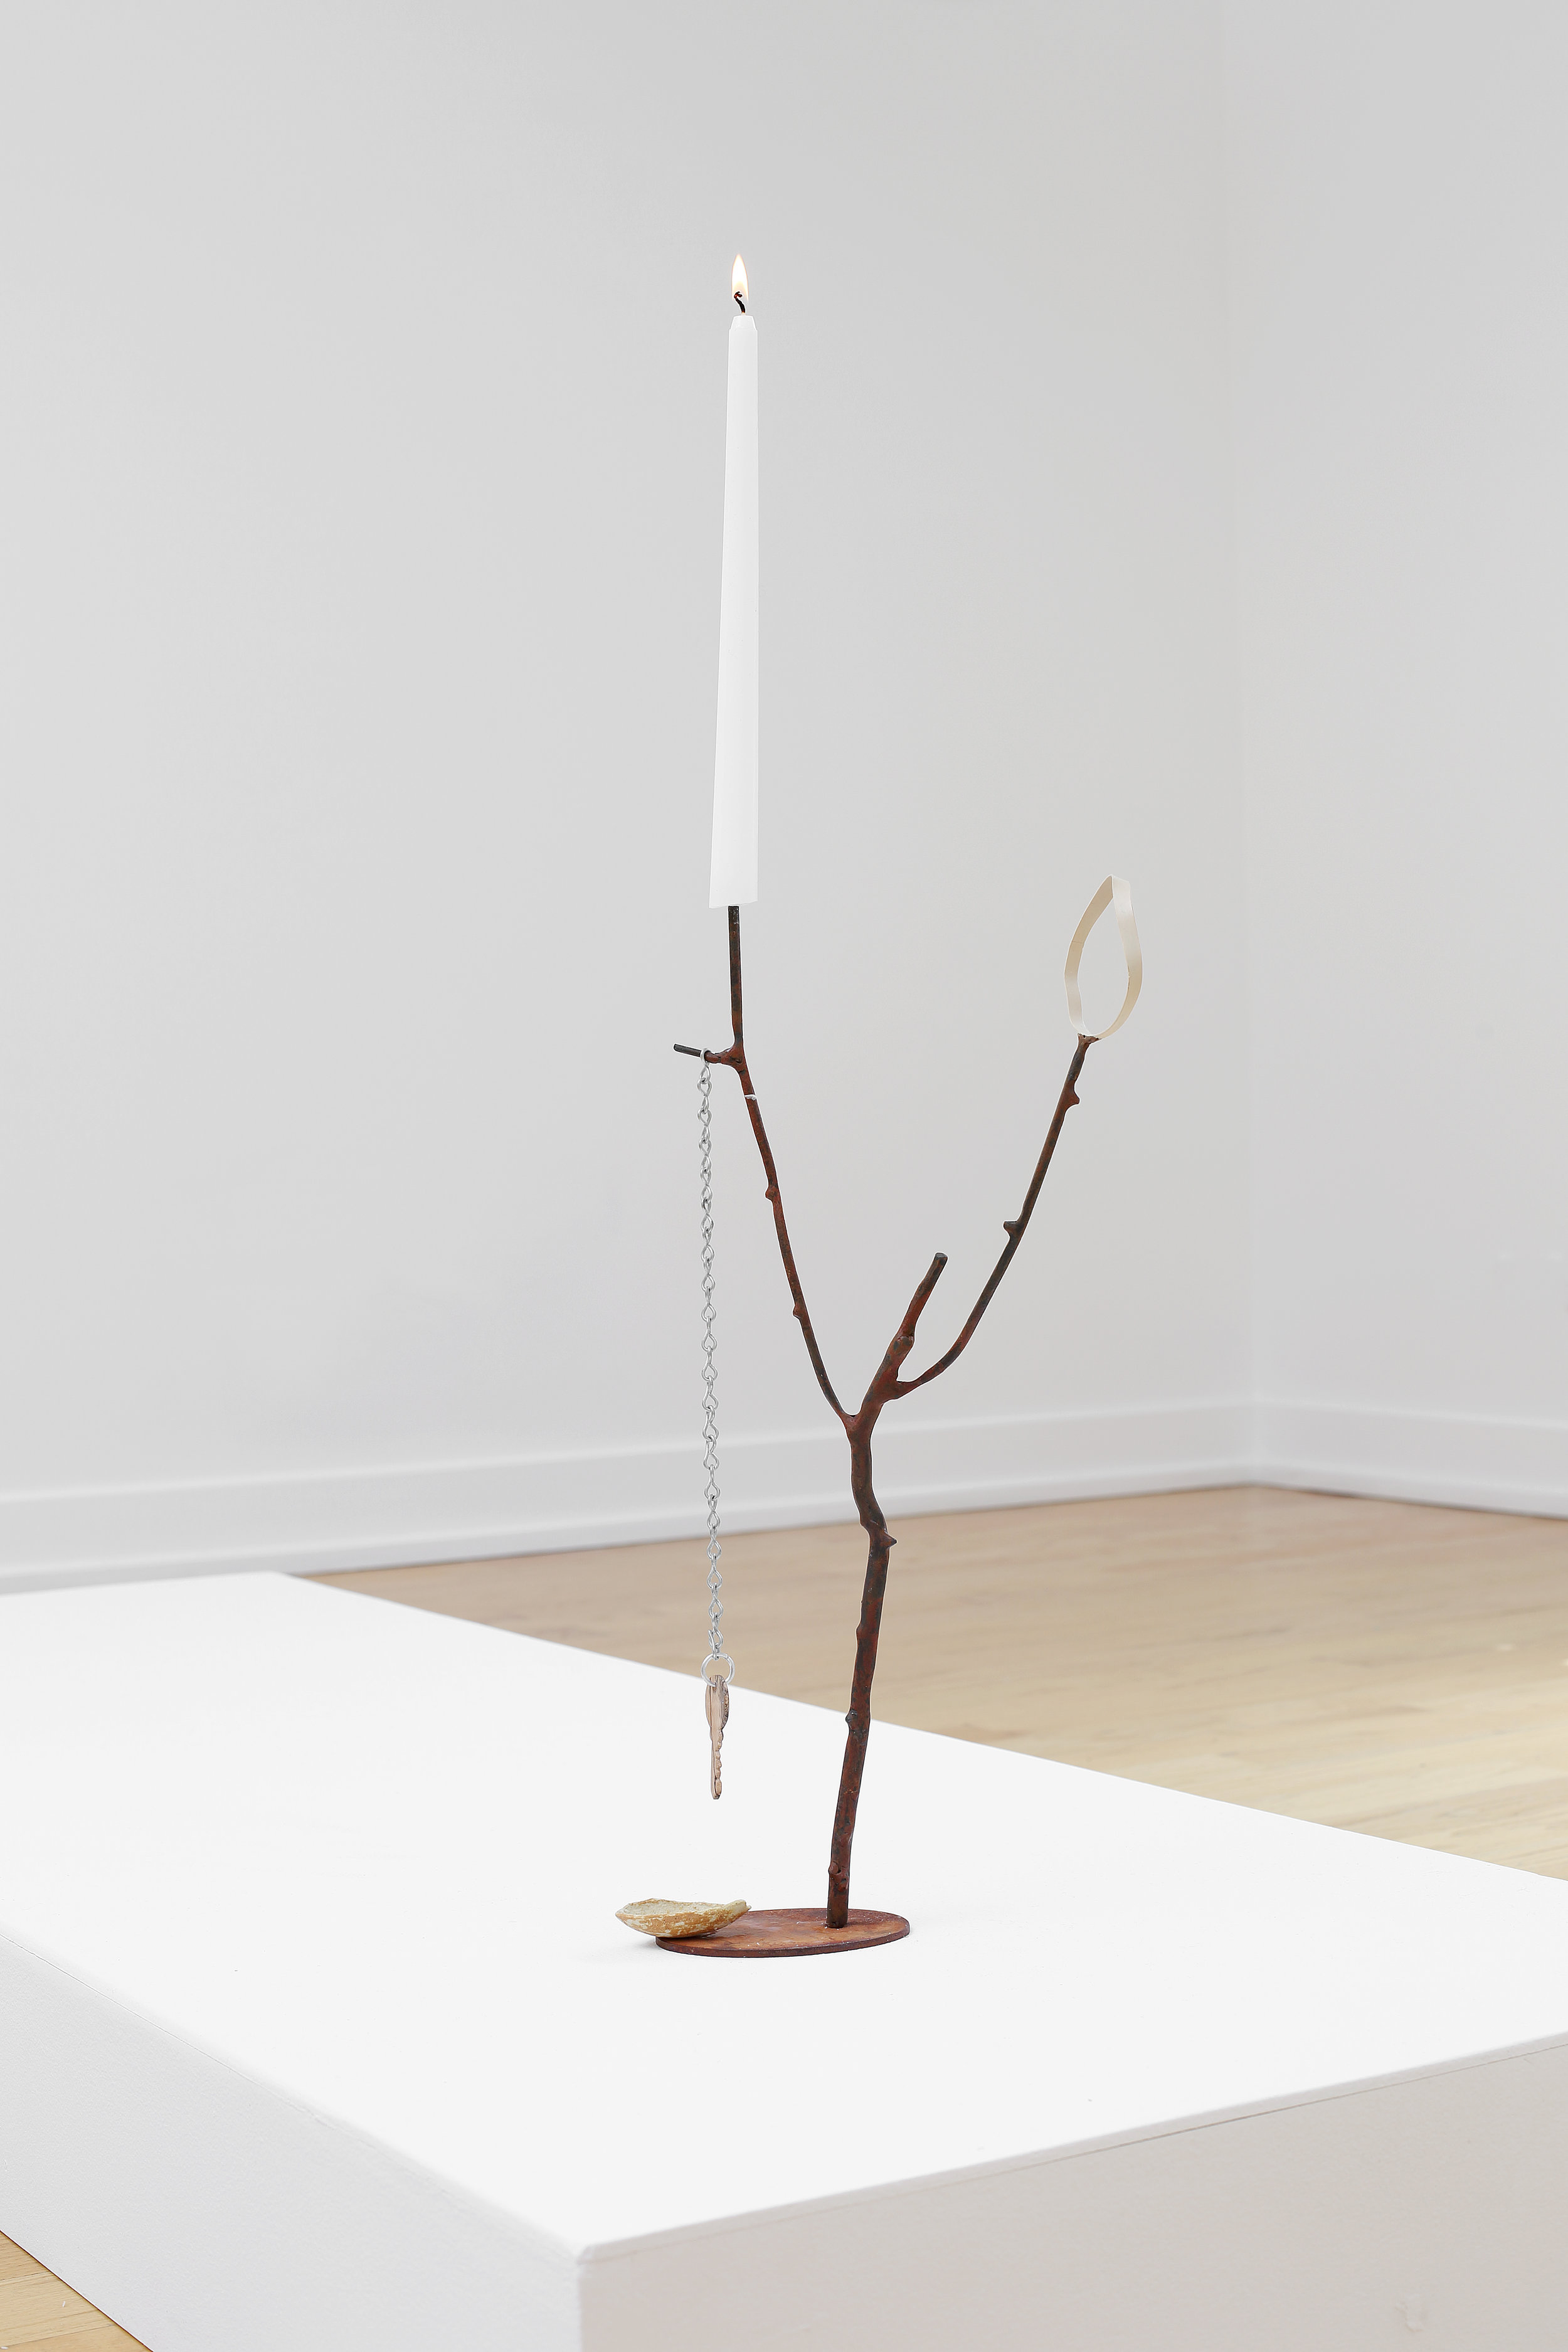 Lesley Jackson ,  Candelabra for Night Walking Like a Romantic , 2017, steel, twig, steel rubber band, enamel, candlestick, chain, maple house key, and ceramic Frito chip